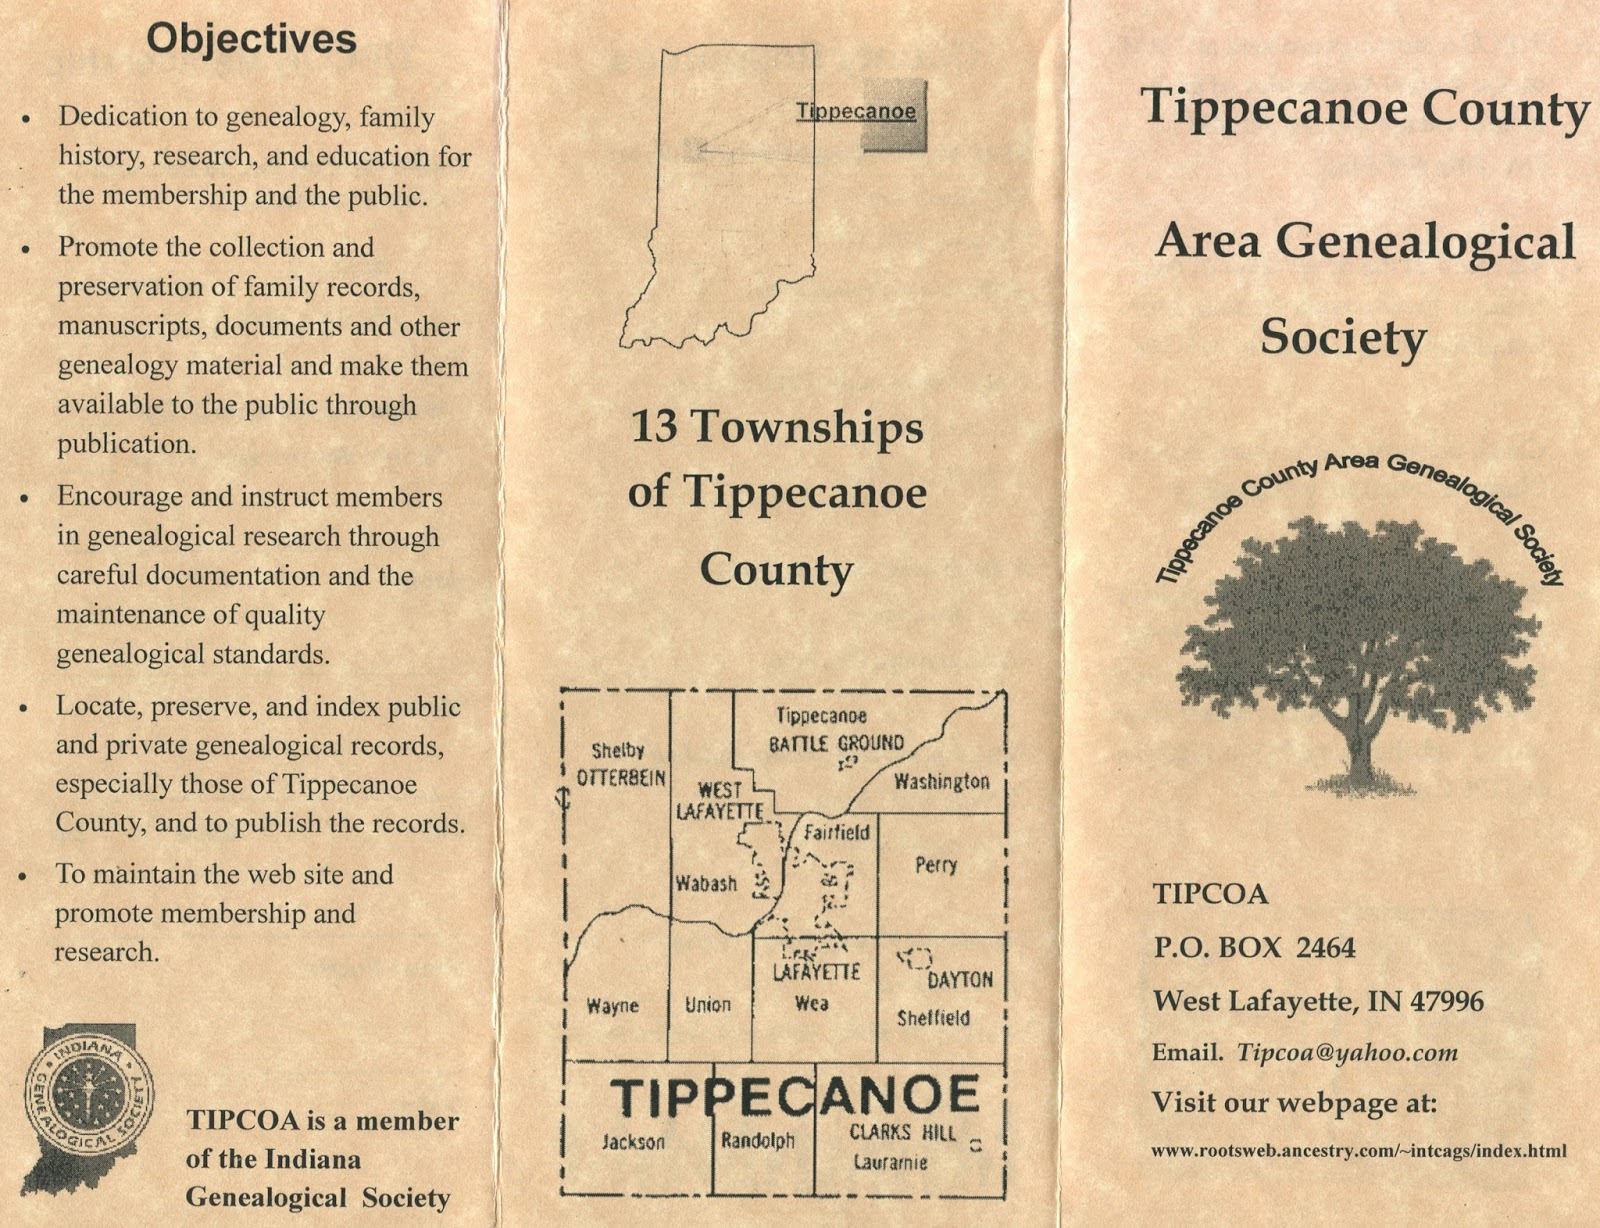 Indiana marshall county tippecanoe -  Or Archive Have Indiana Related Genealogical Materials That Need Digitizing Consider Applying To The Igs Genealogy Digitization Project Which Awards A